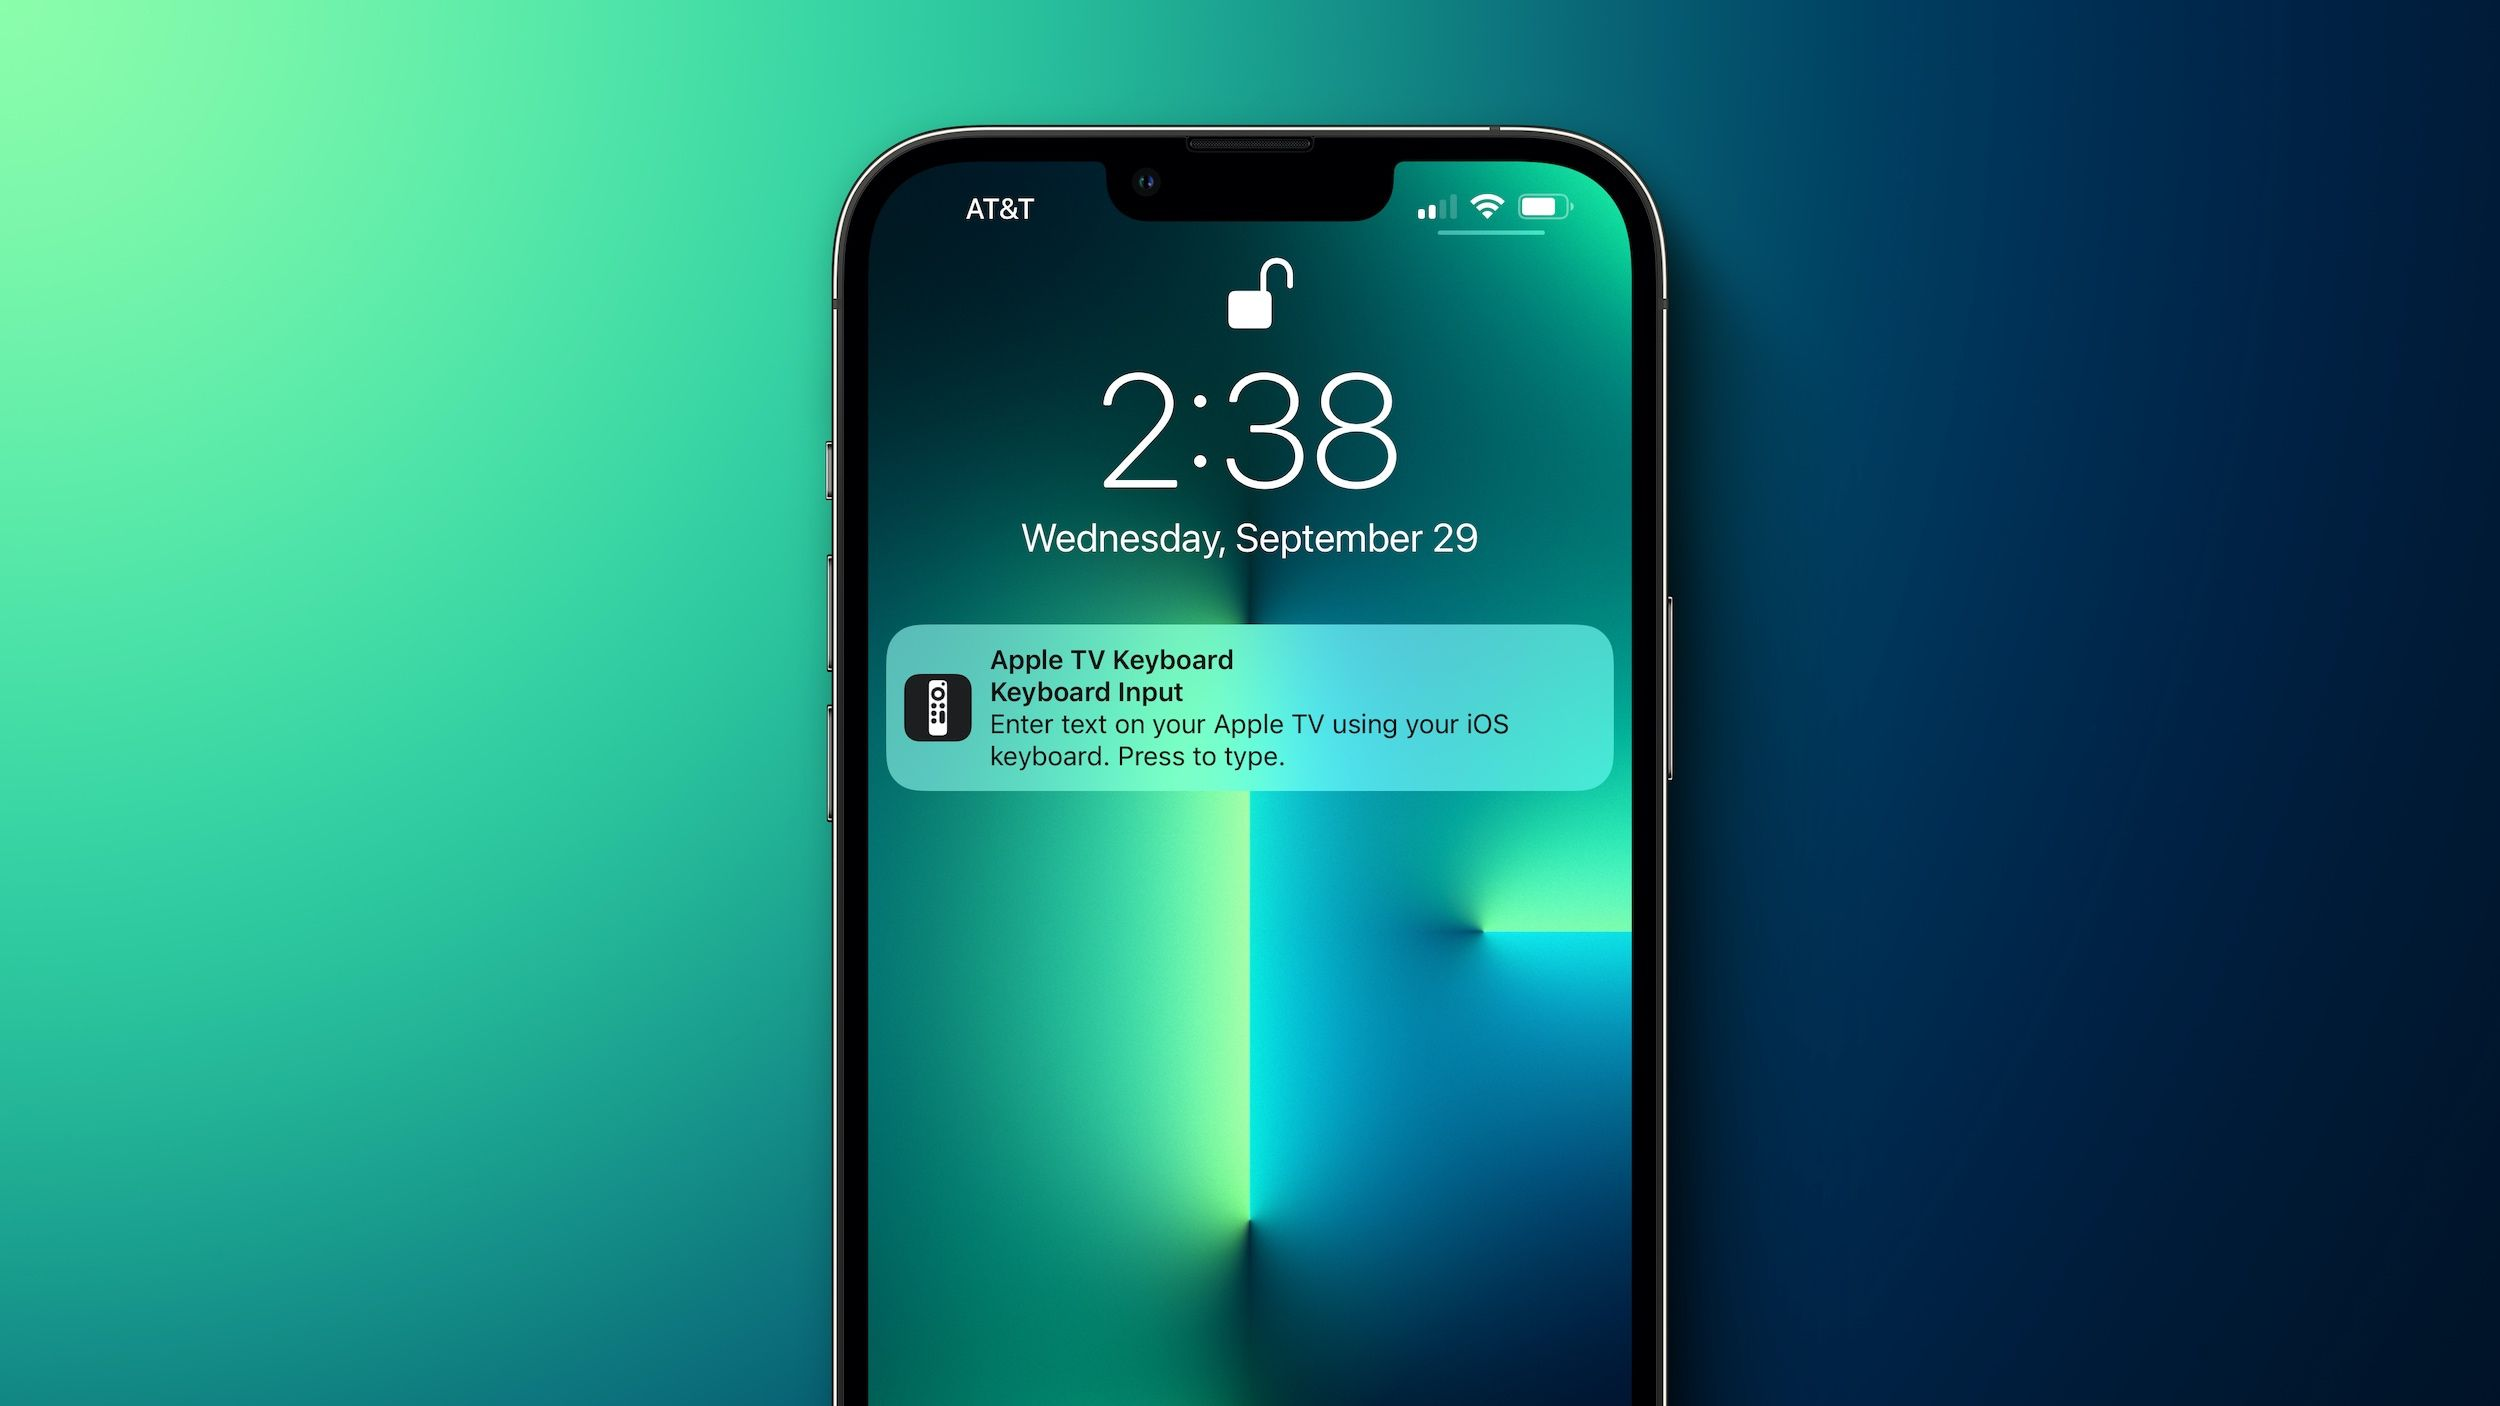 iOS 15 Doesn't Offer a Way to Disable Apple TV Keyboard Notifications